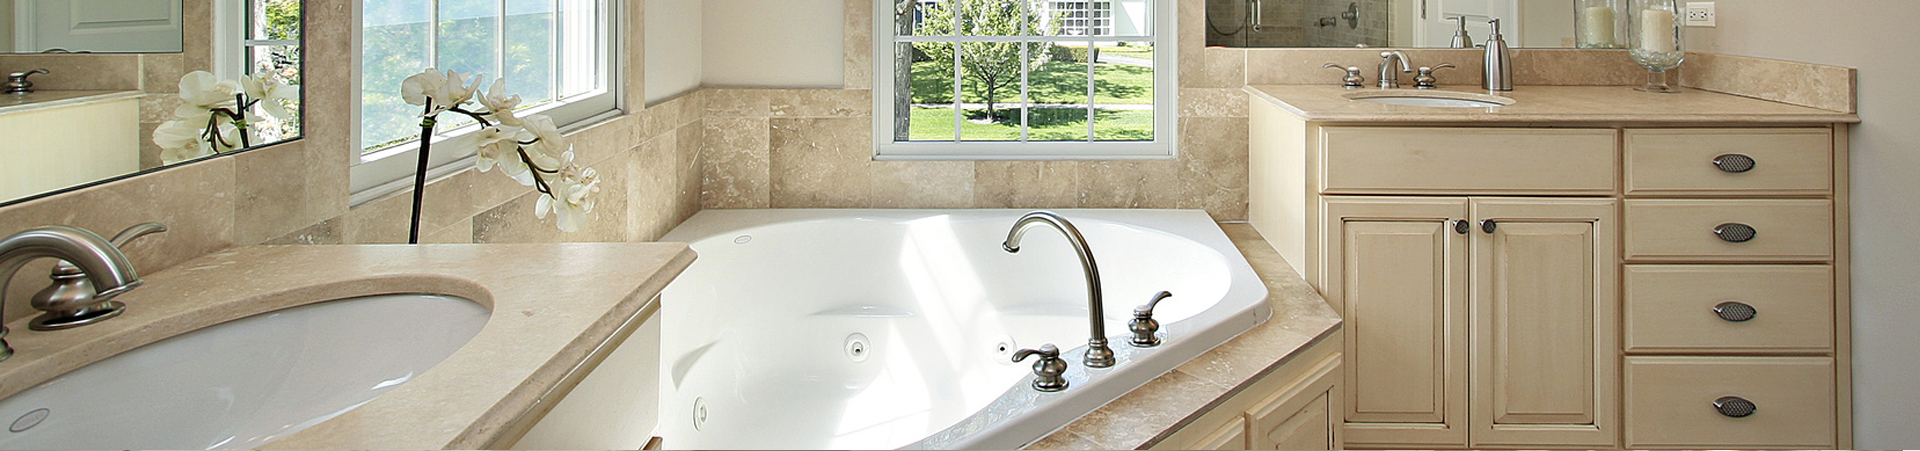 Bathroom Remodeling - Bath Remodel Contractor